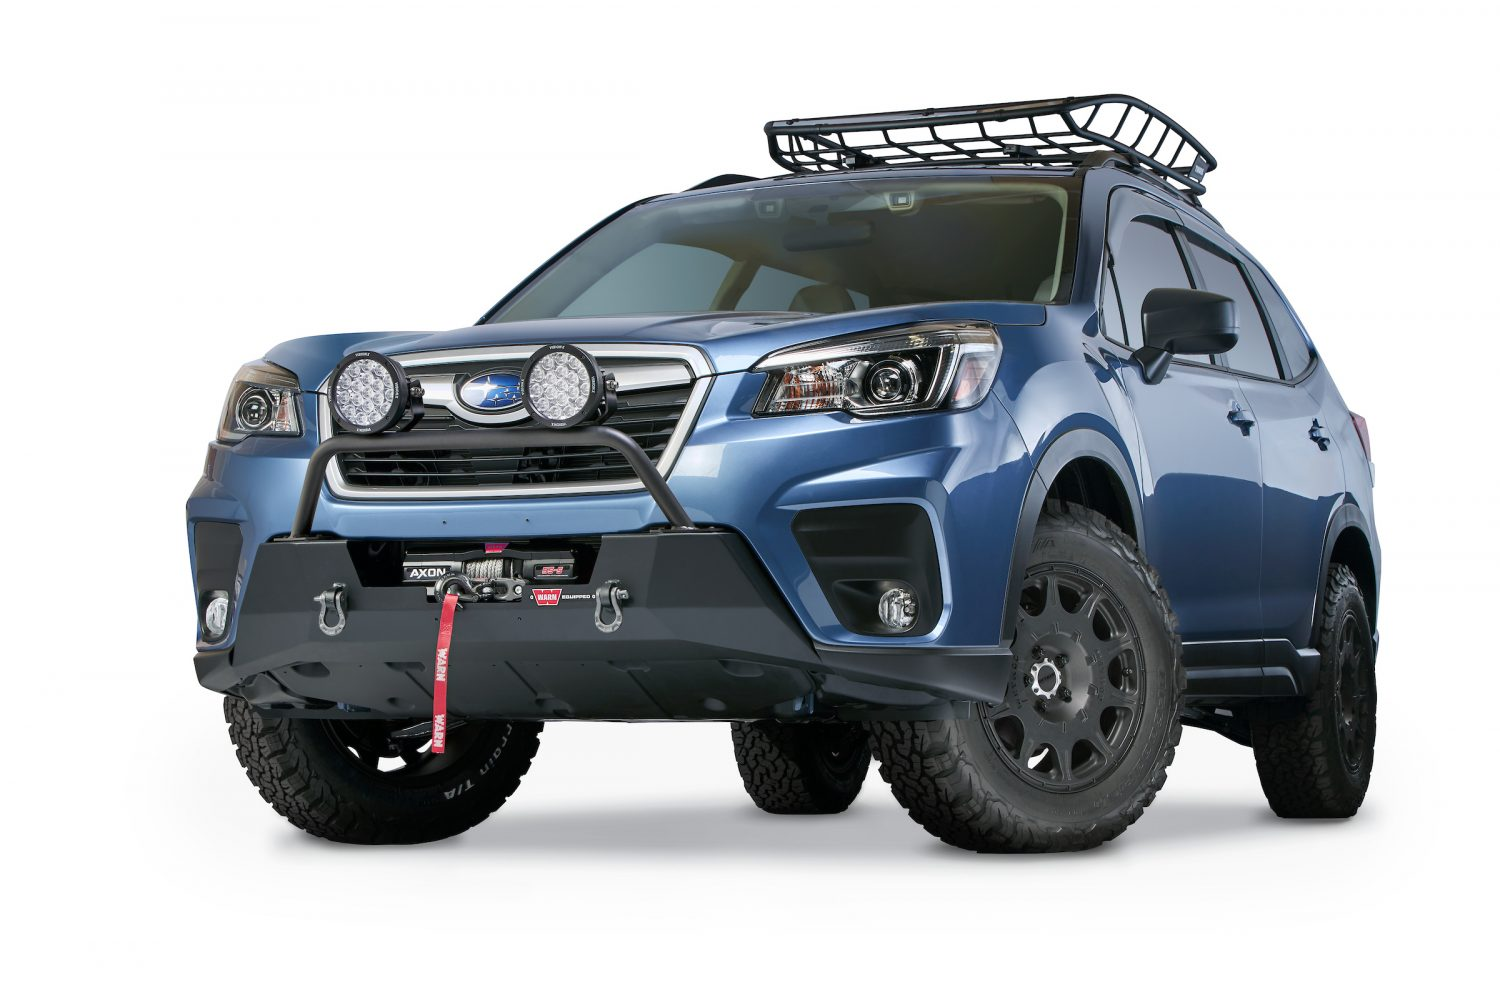 Warn Releases Their New Subaru Forester Winch Tray - Expedition Portal